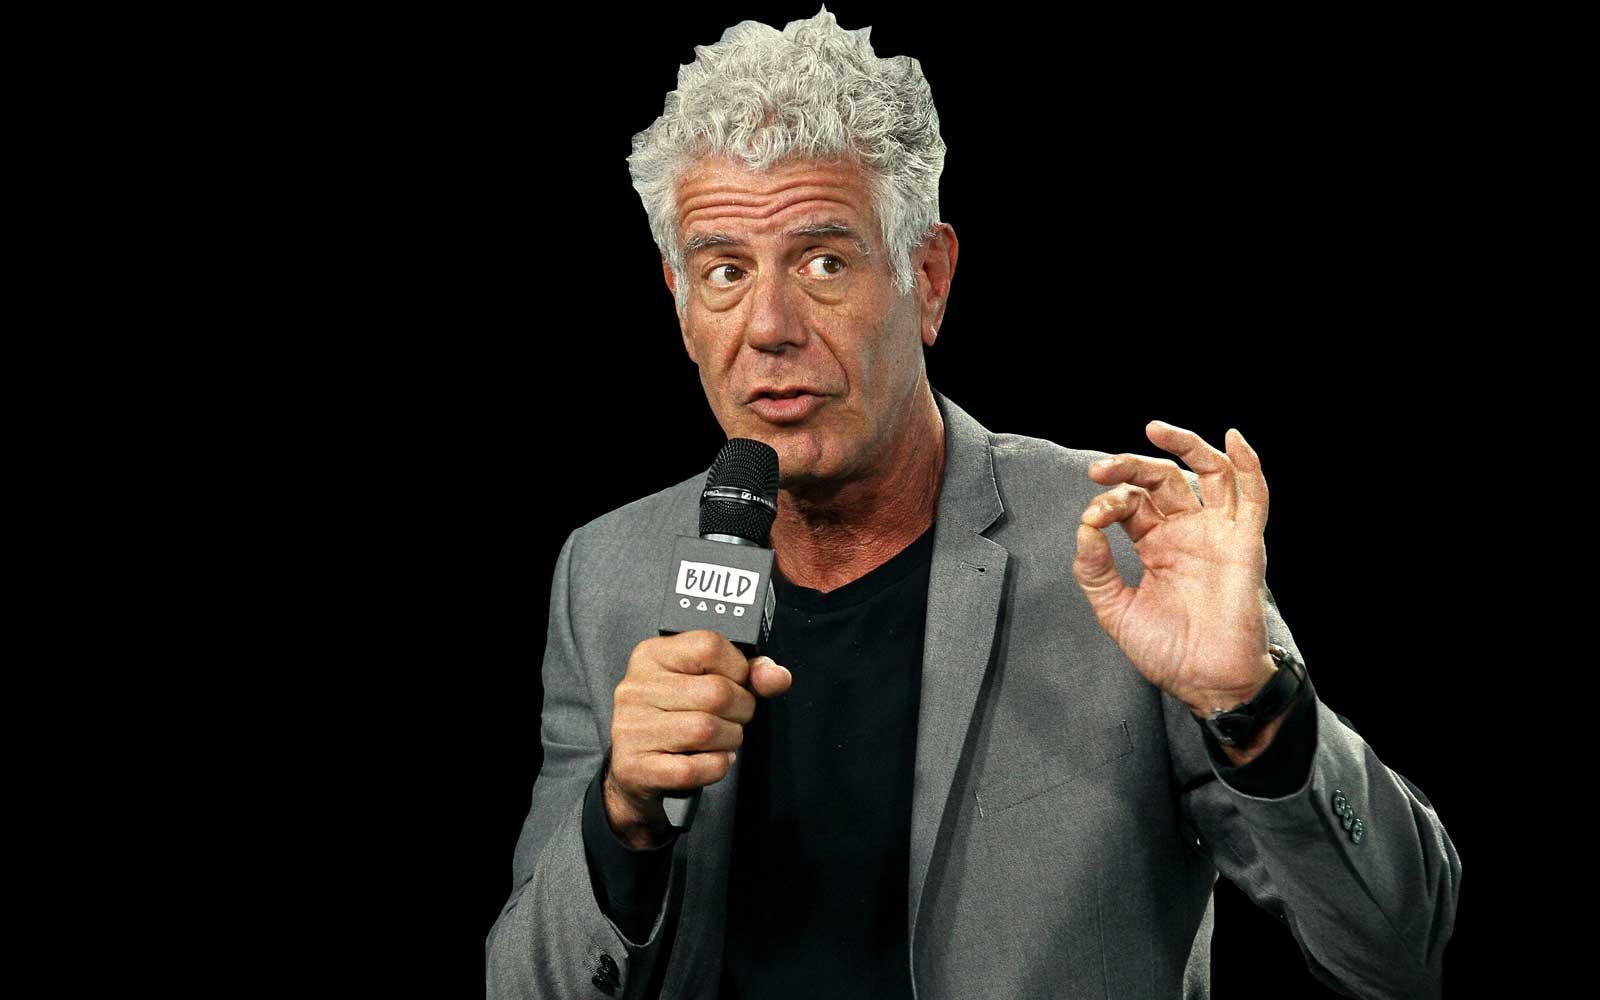 Why Anthony Bourdain Won't Film in North Korea